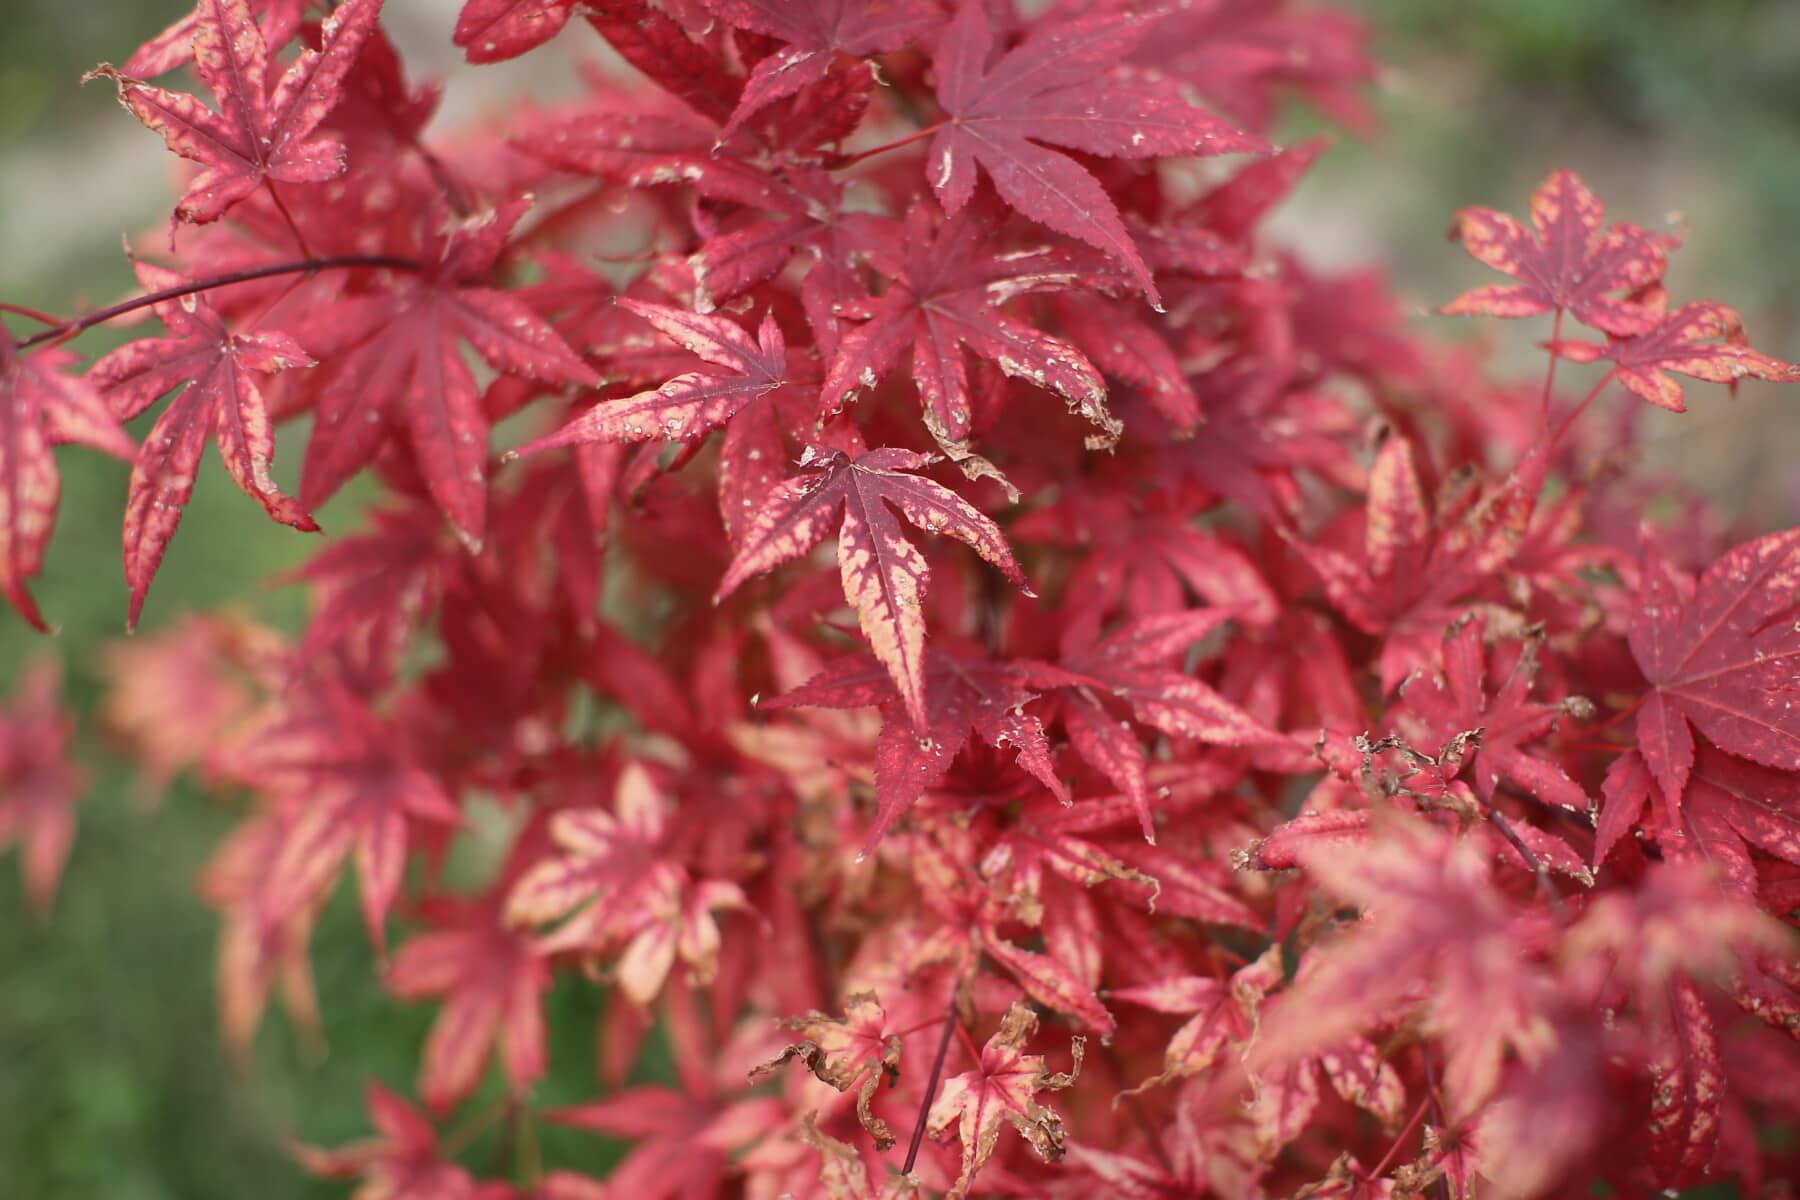 bushes, leaf, branch, red, leaves, flora, nature, maple, garden, tree